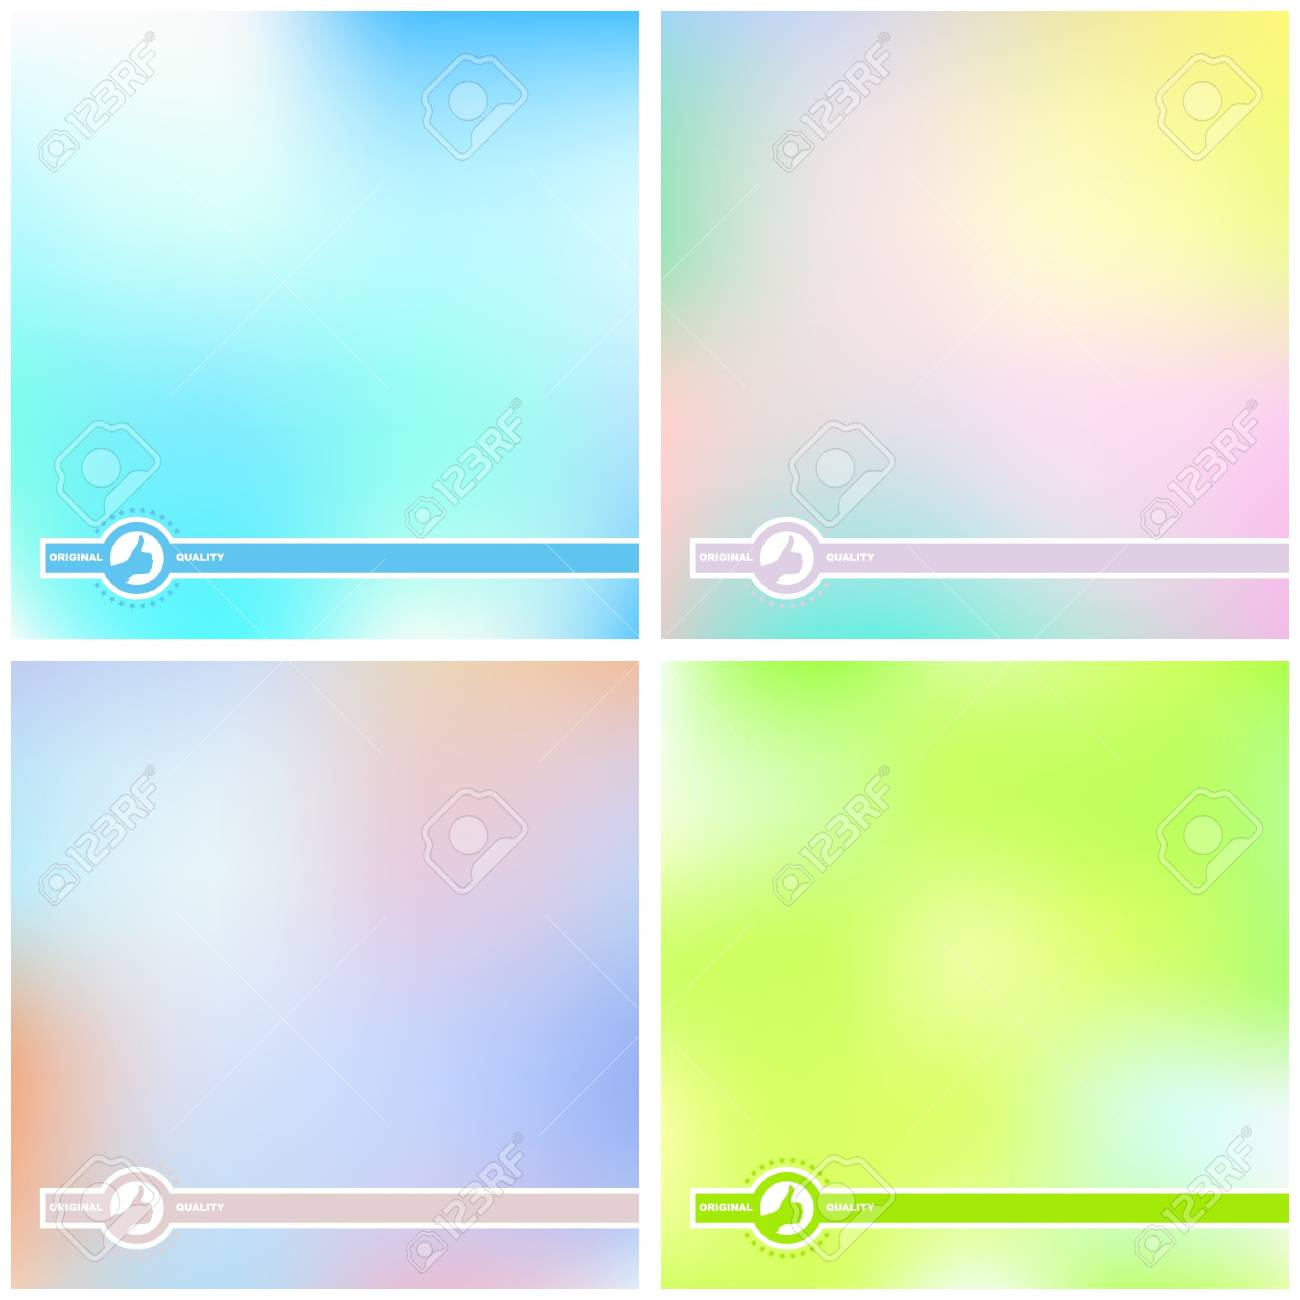 Abstract background. Stock Vector - 7482318